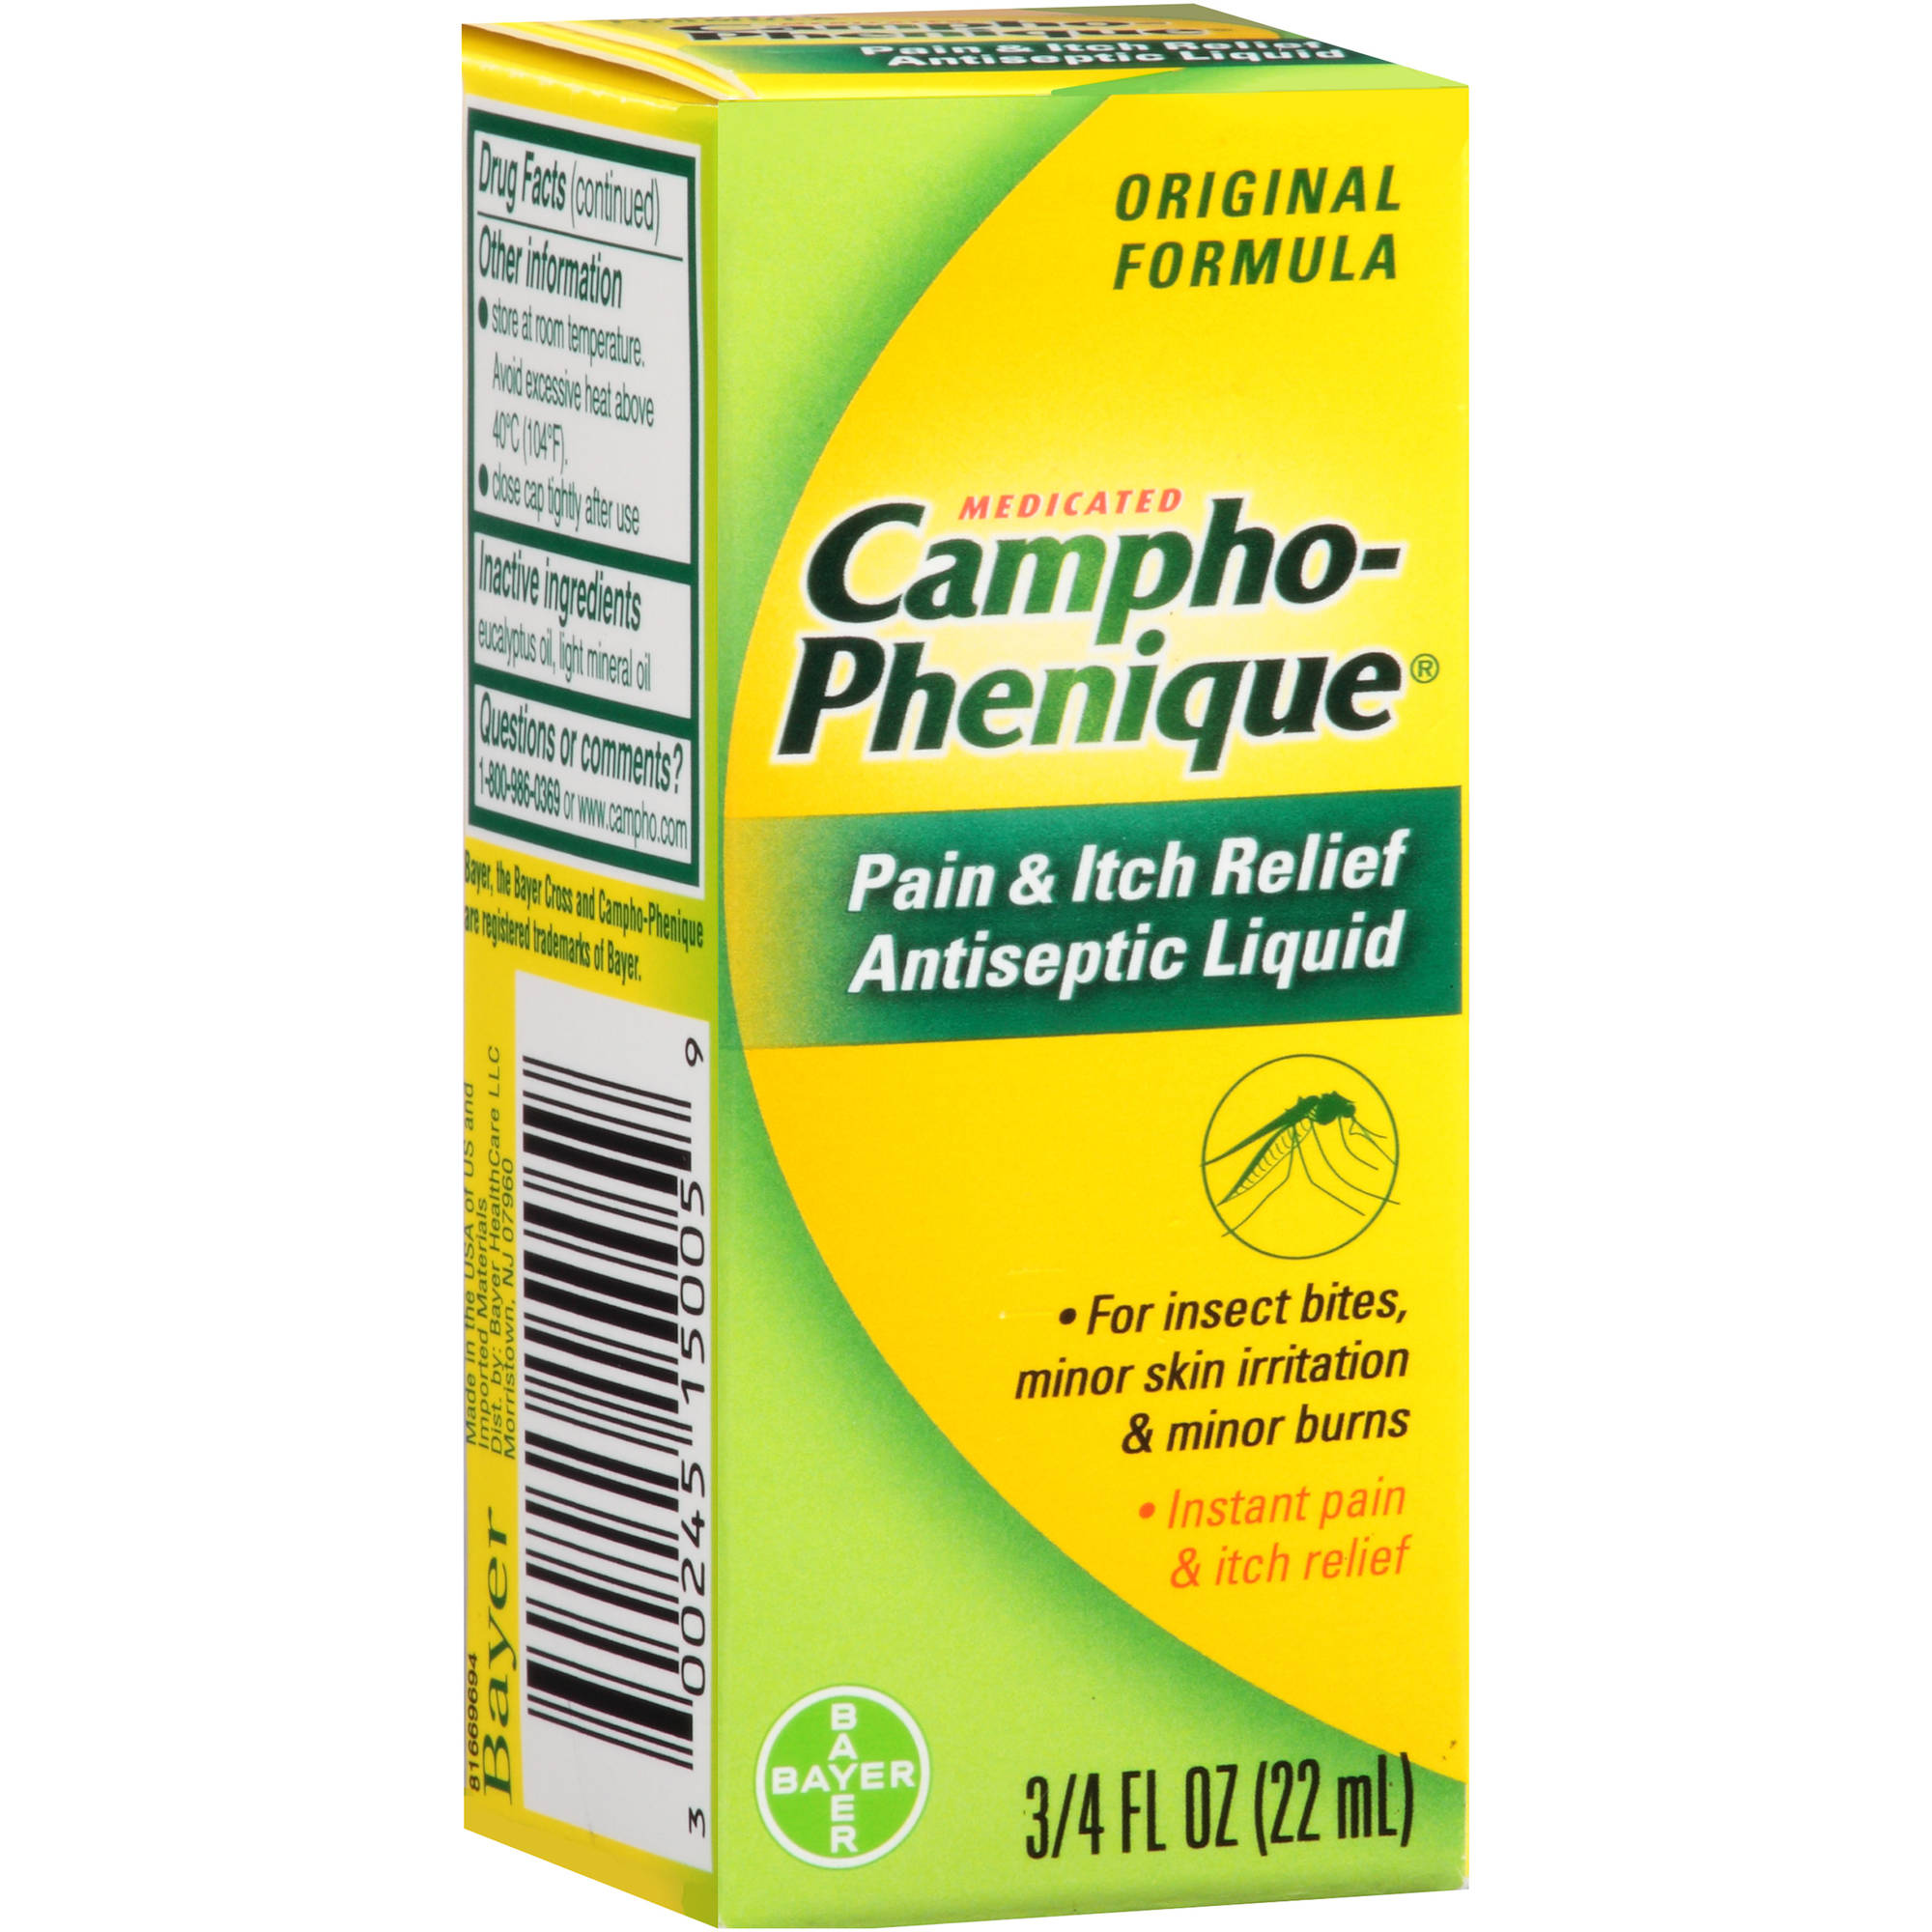 Campho-Phenique Medicated Pain & Itch Relief Antiseptic Liquid, 0.75 fl oz